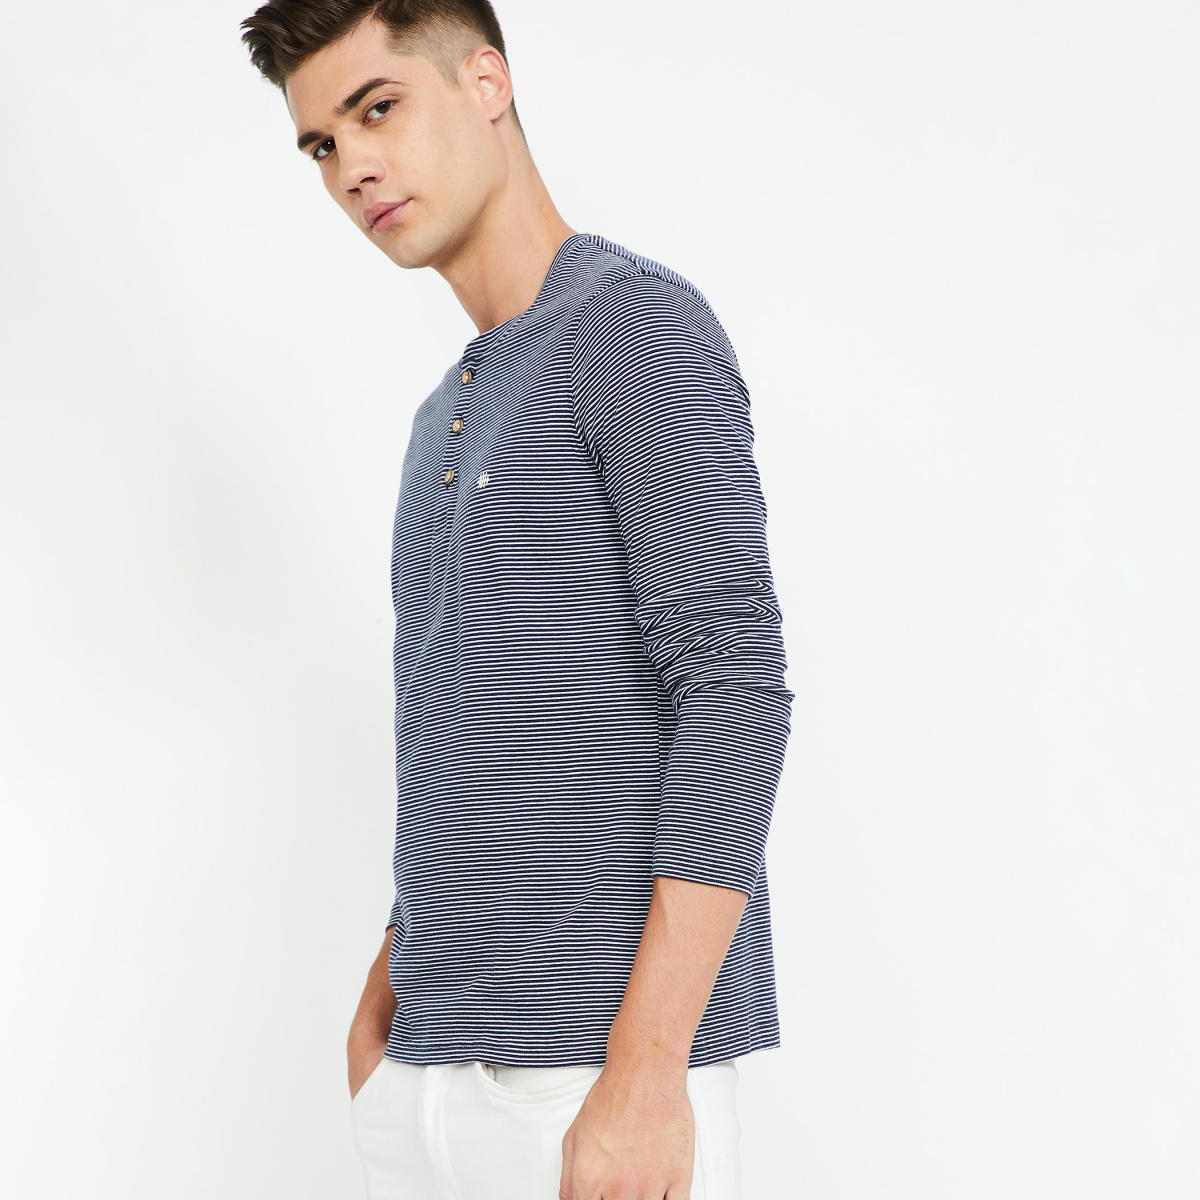 LEE Striped Full Sleeves Slim Fit Henley T-shirt